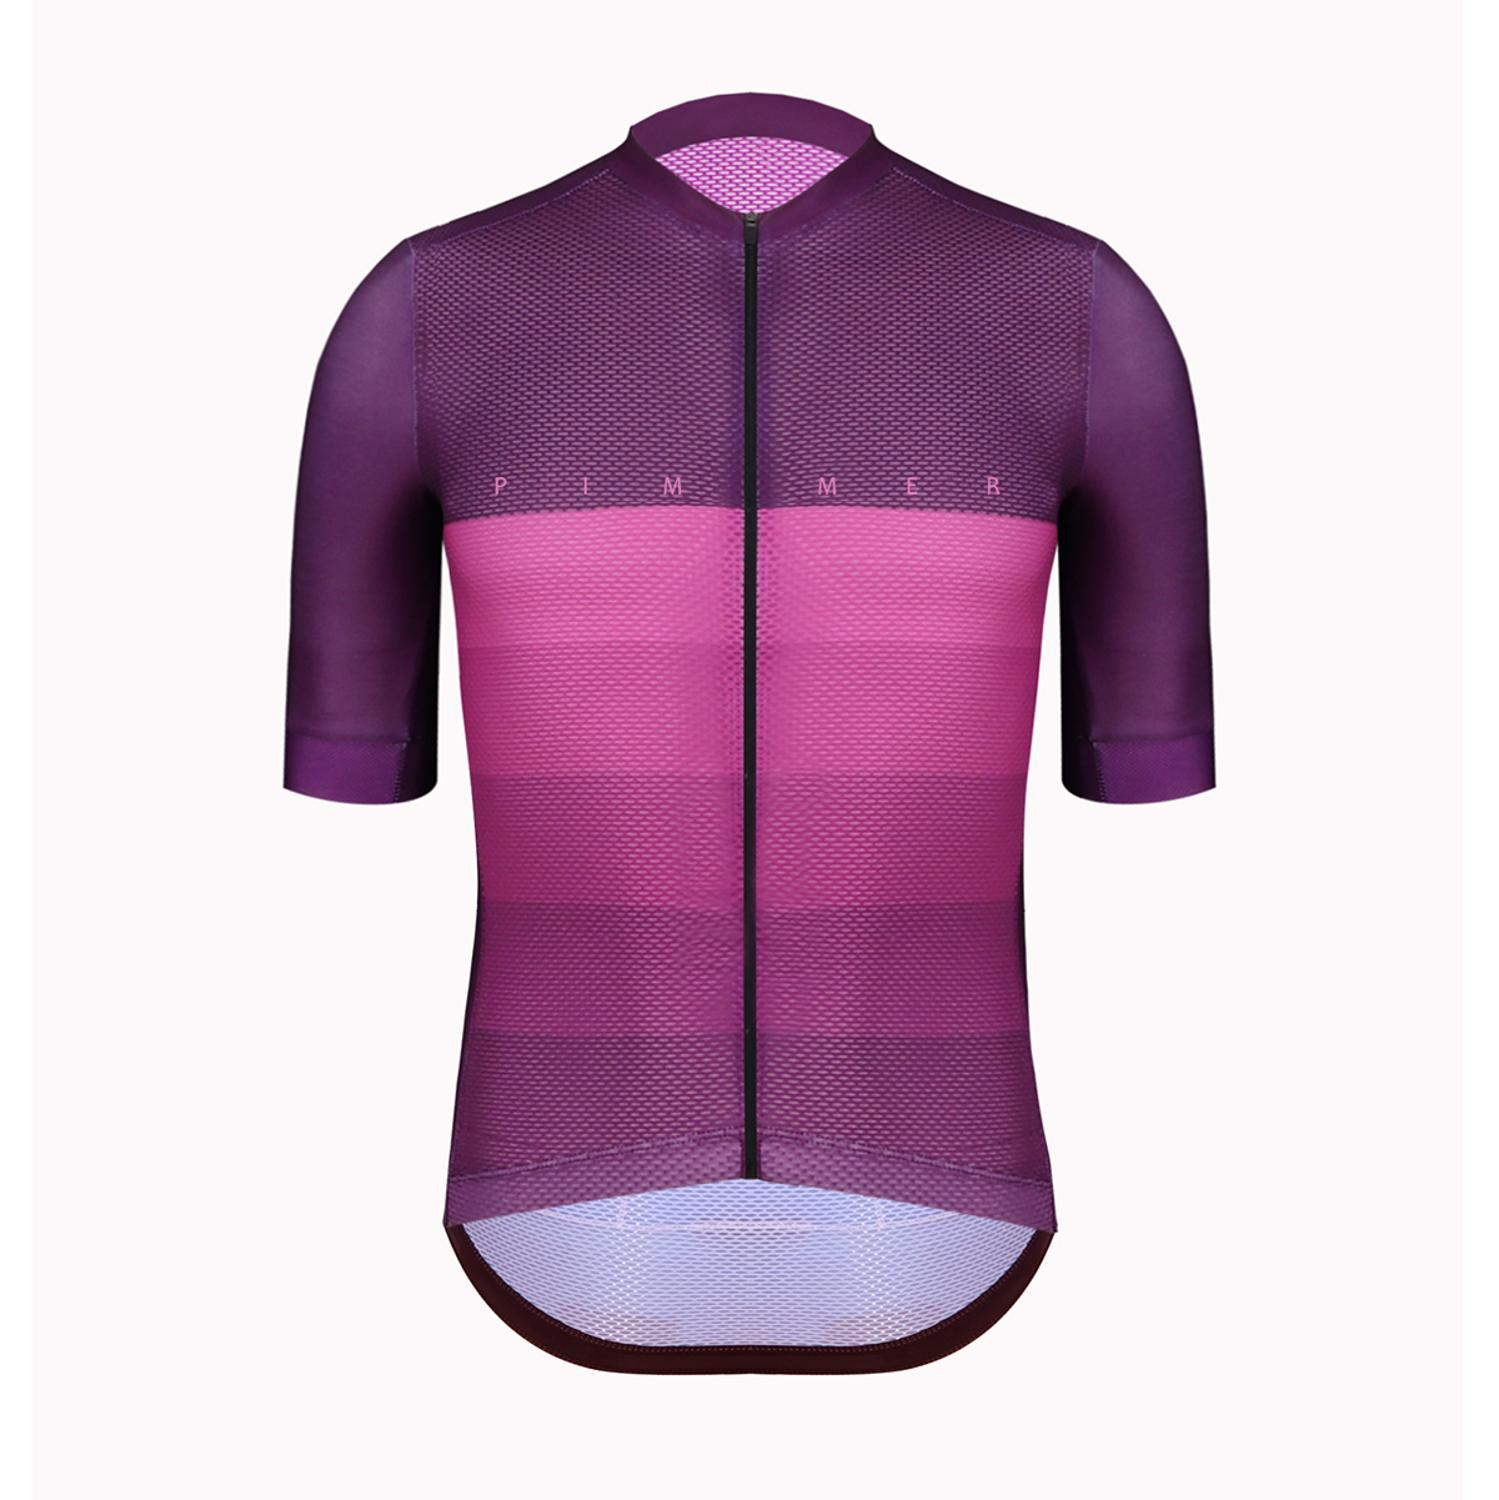 Cycling-Jersey Short-Sleeve Power-Band Italy Pimmer Climber Lightweight with Purp Mesh-Fabric